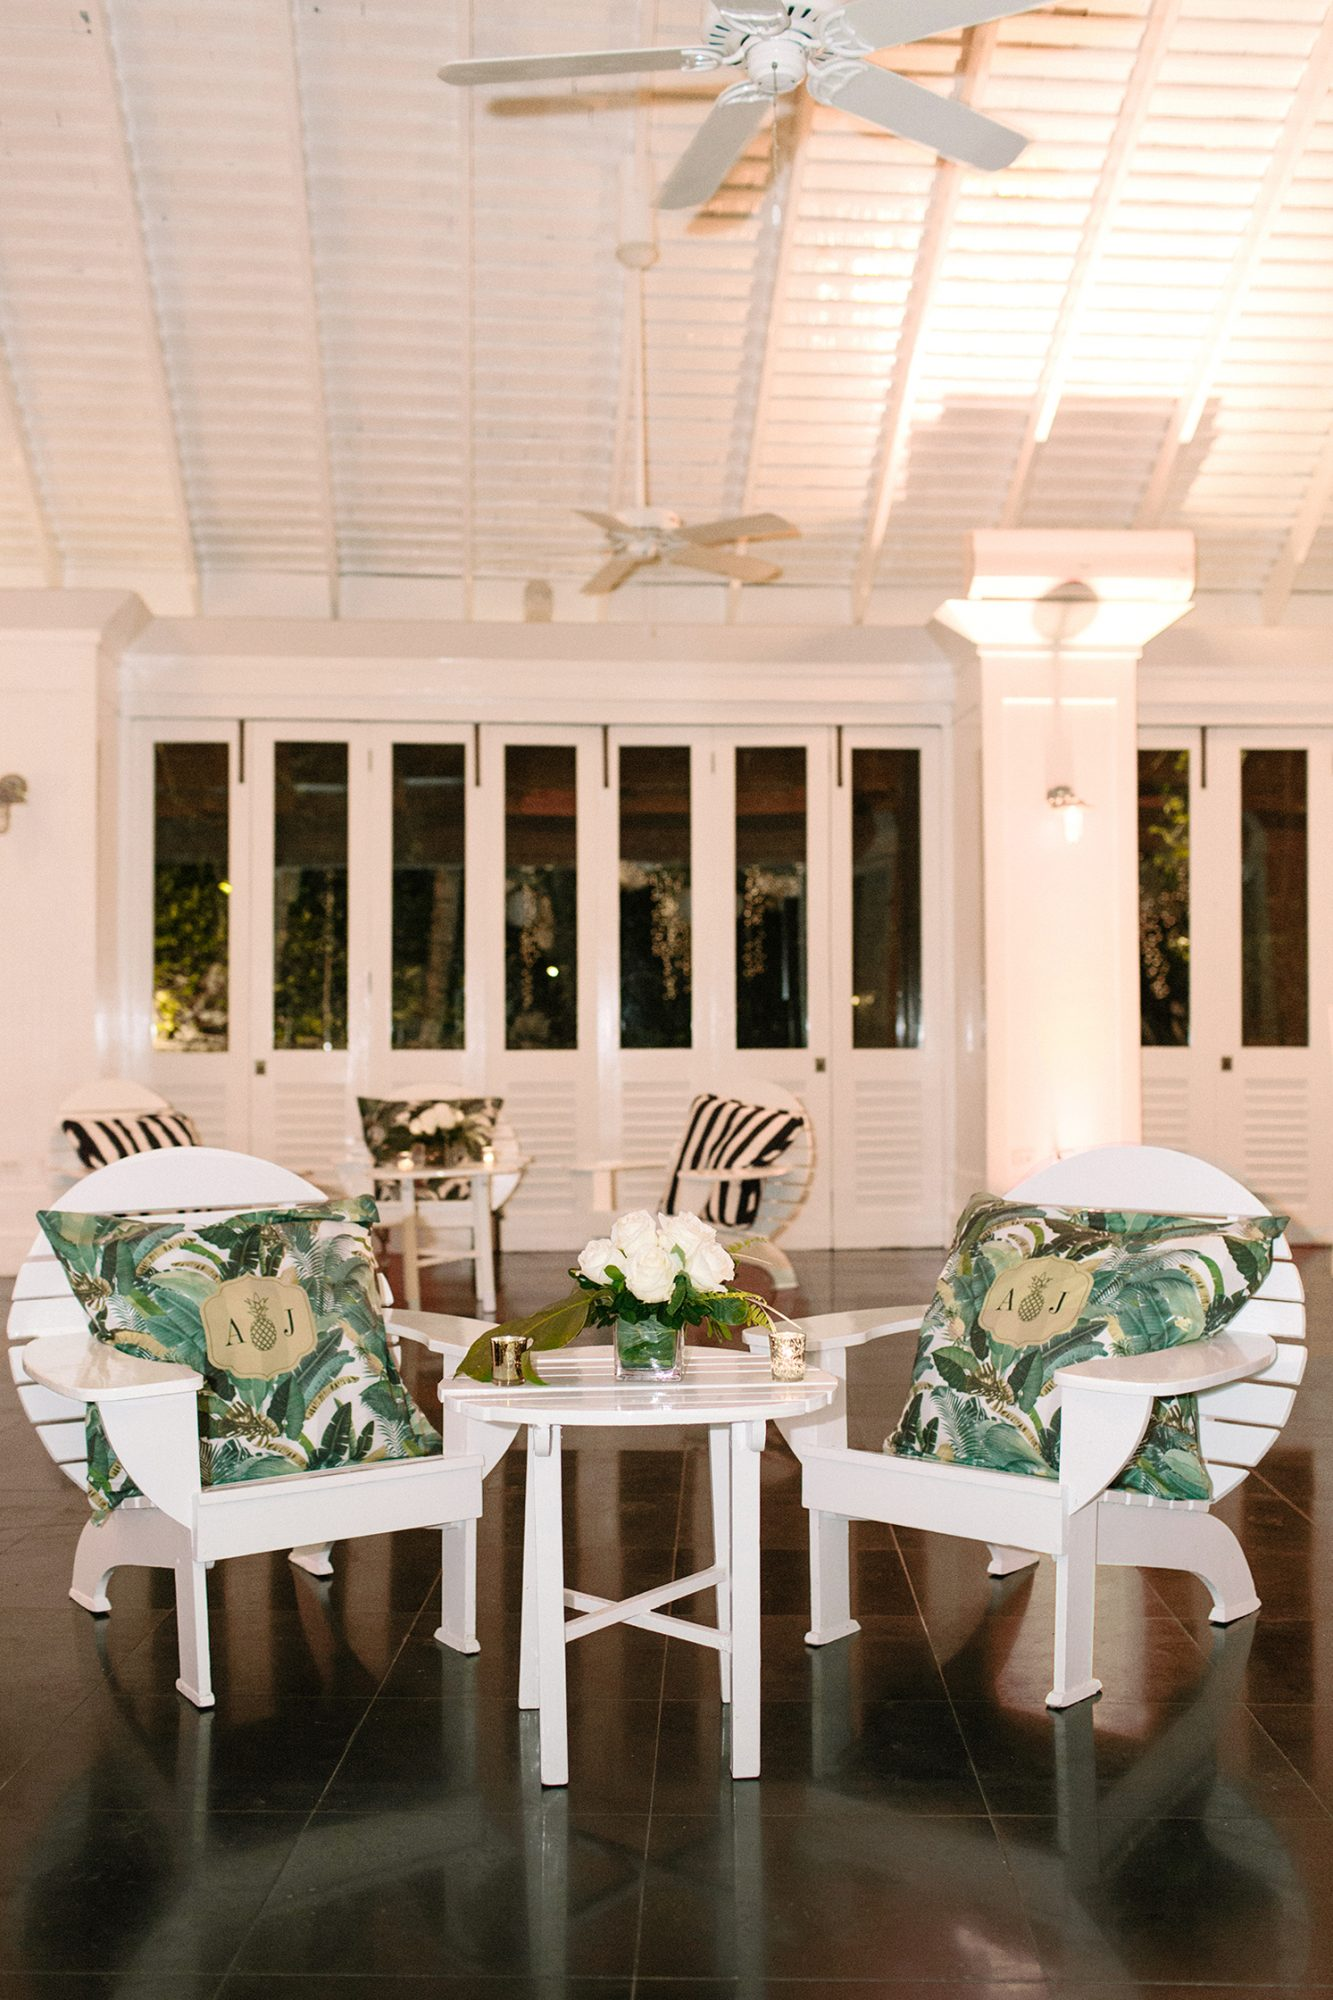 abbey jeffrey wedding lounge with tropical pillows